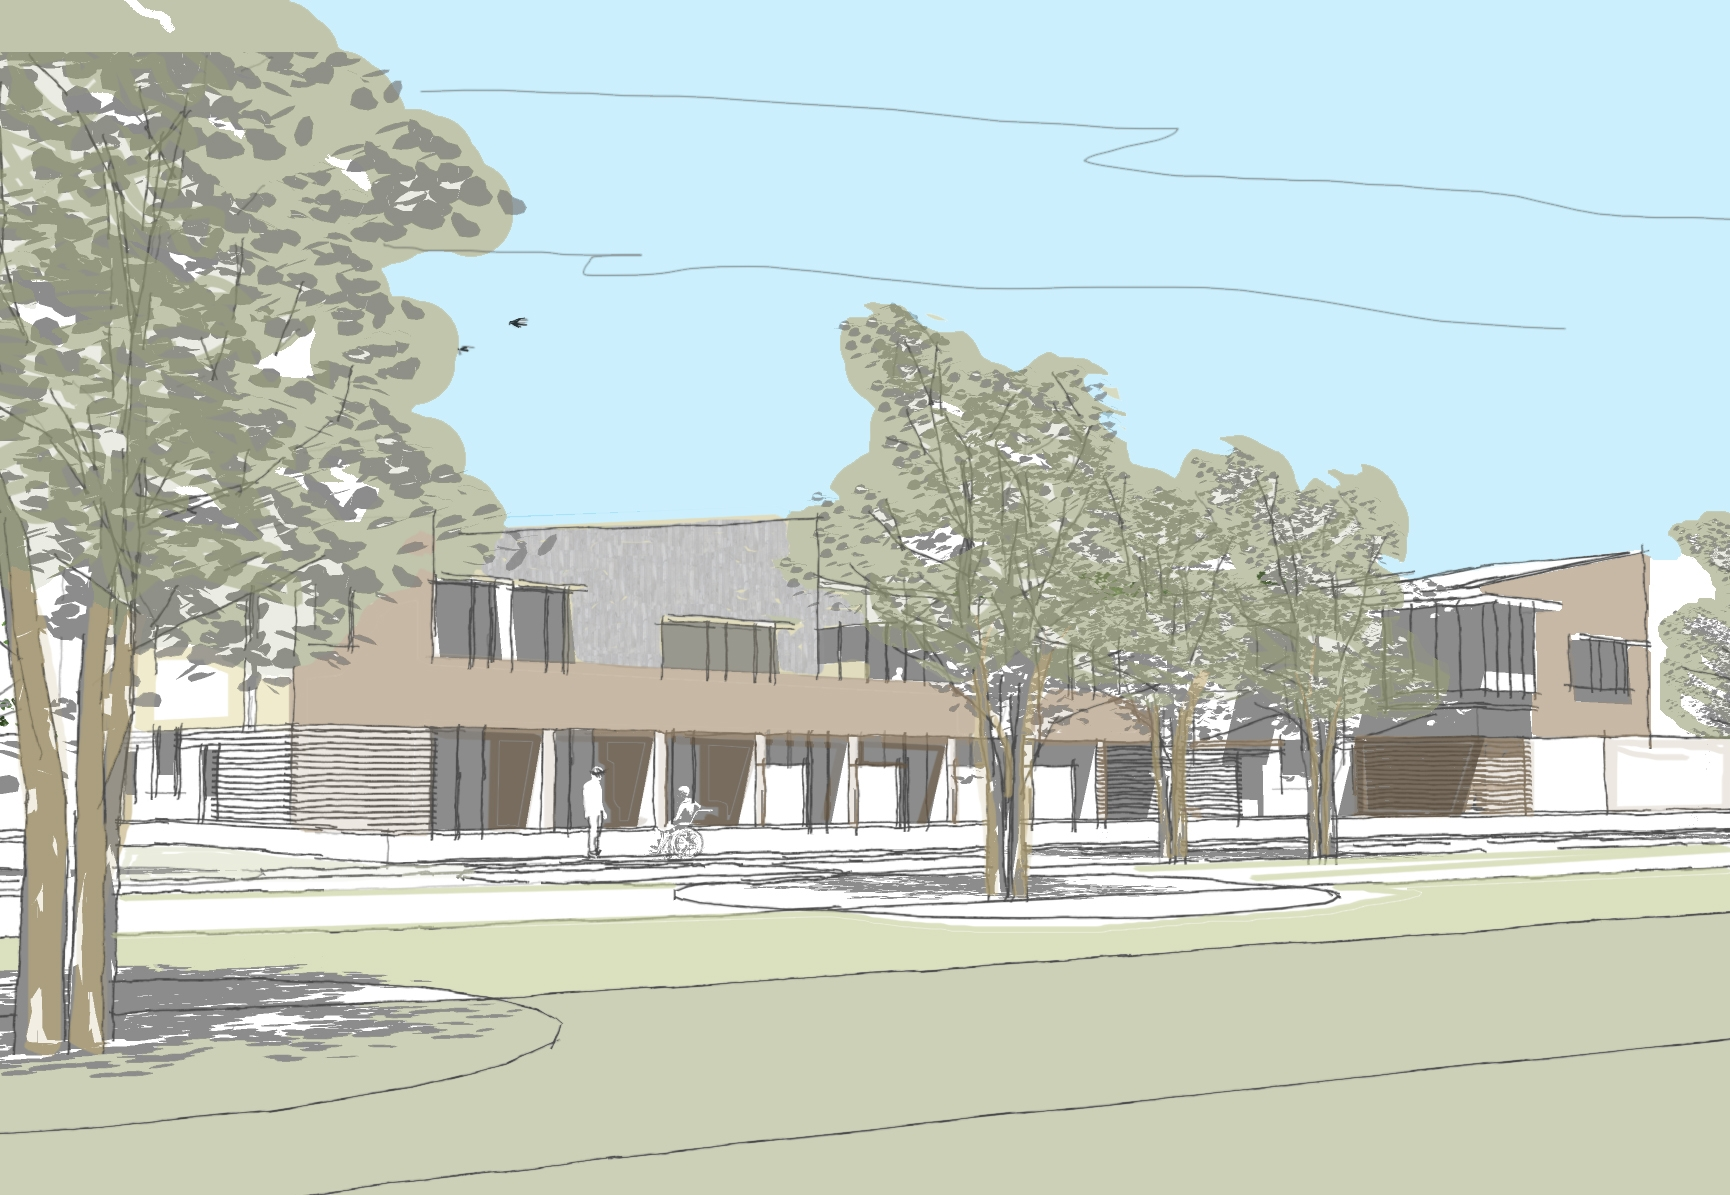 An artist's impression of the proposed new hospice in Horndon